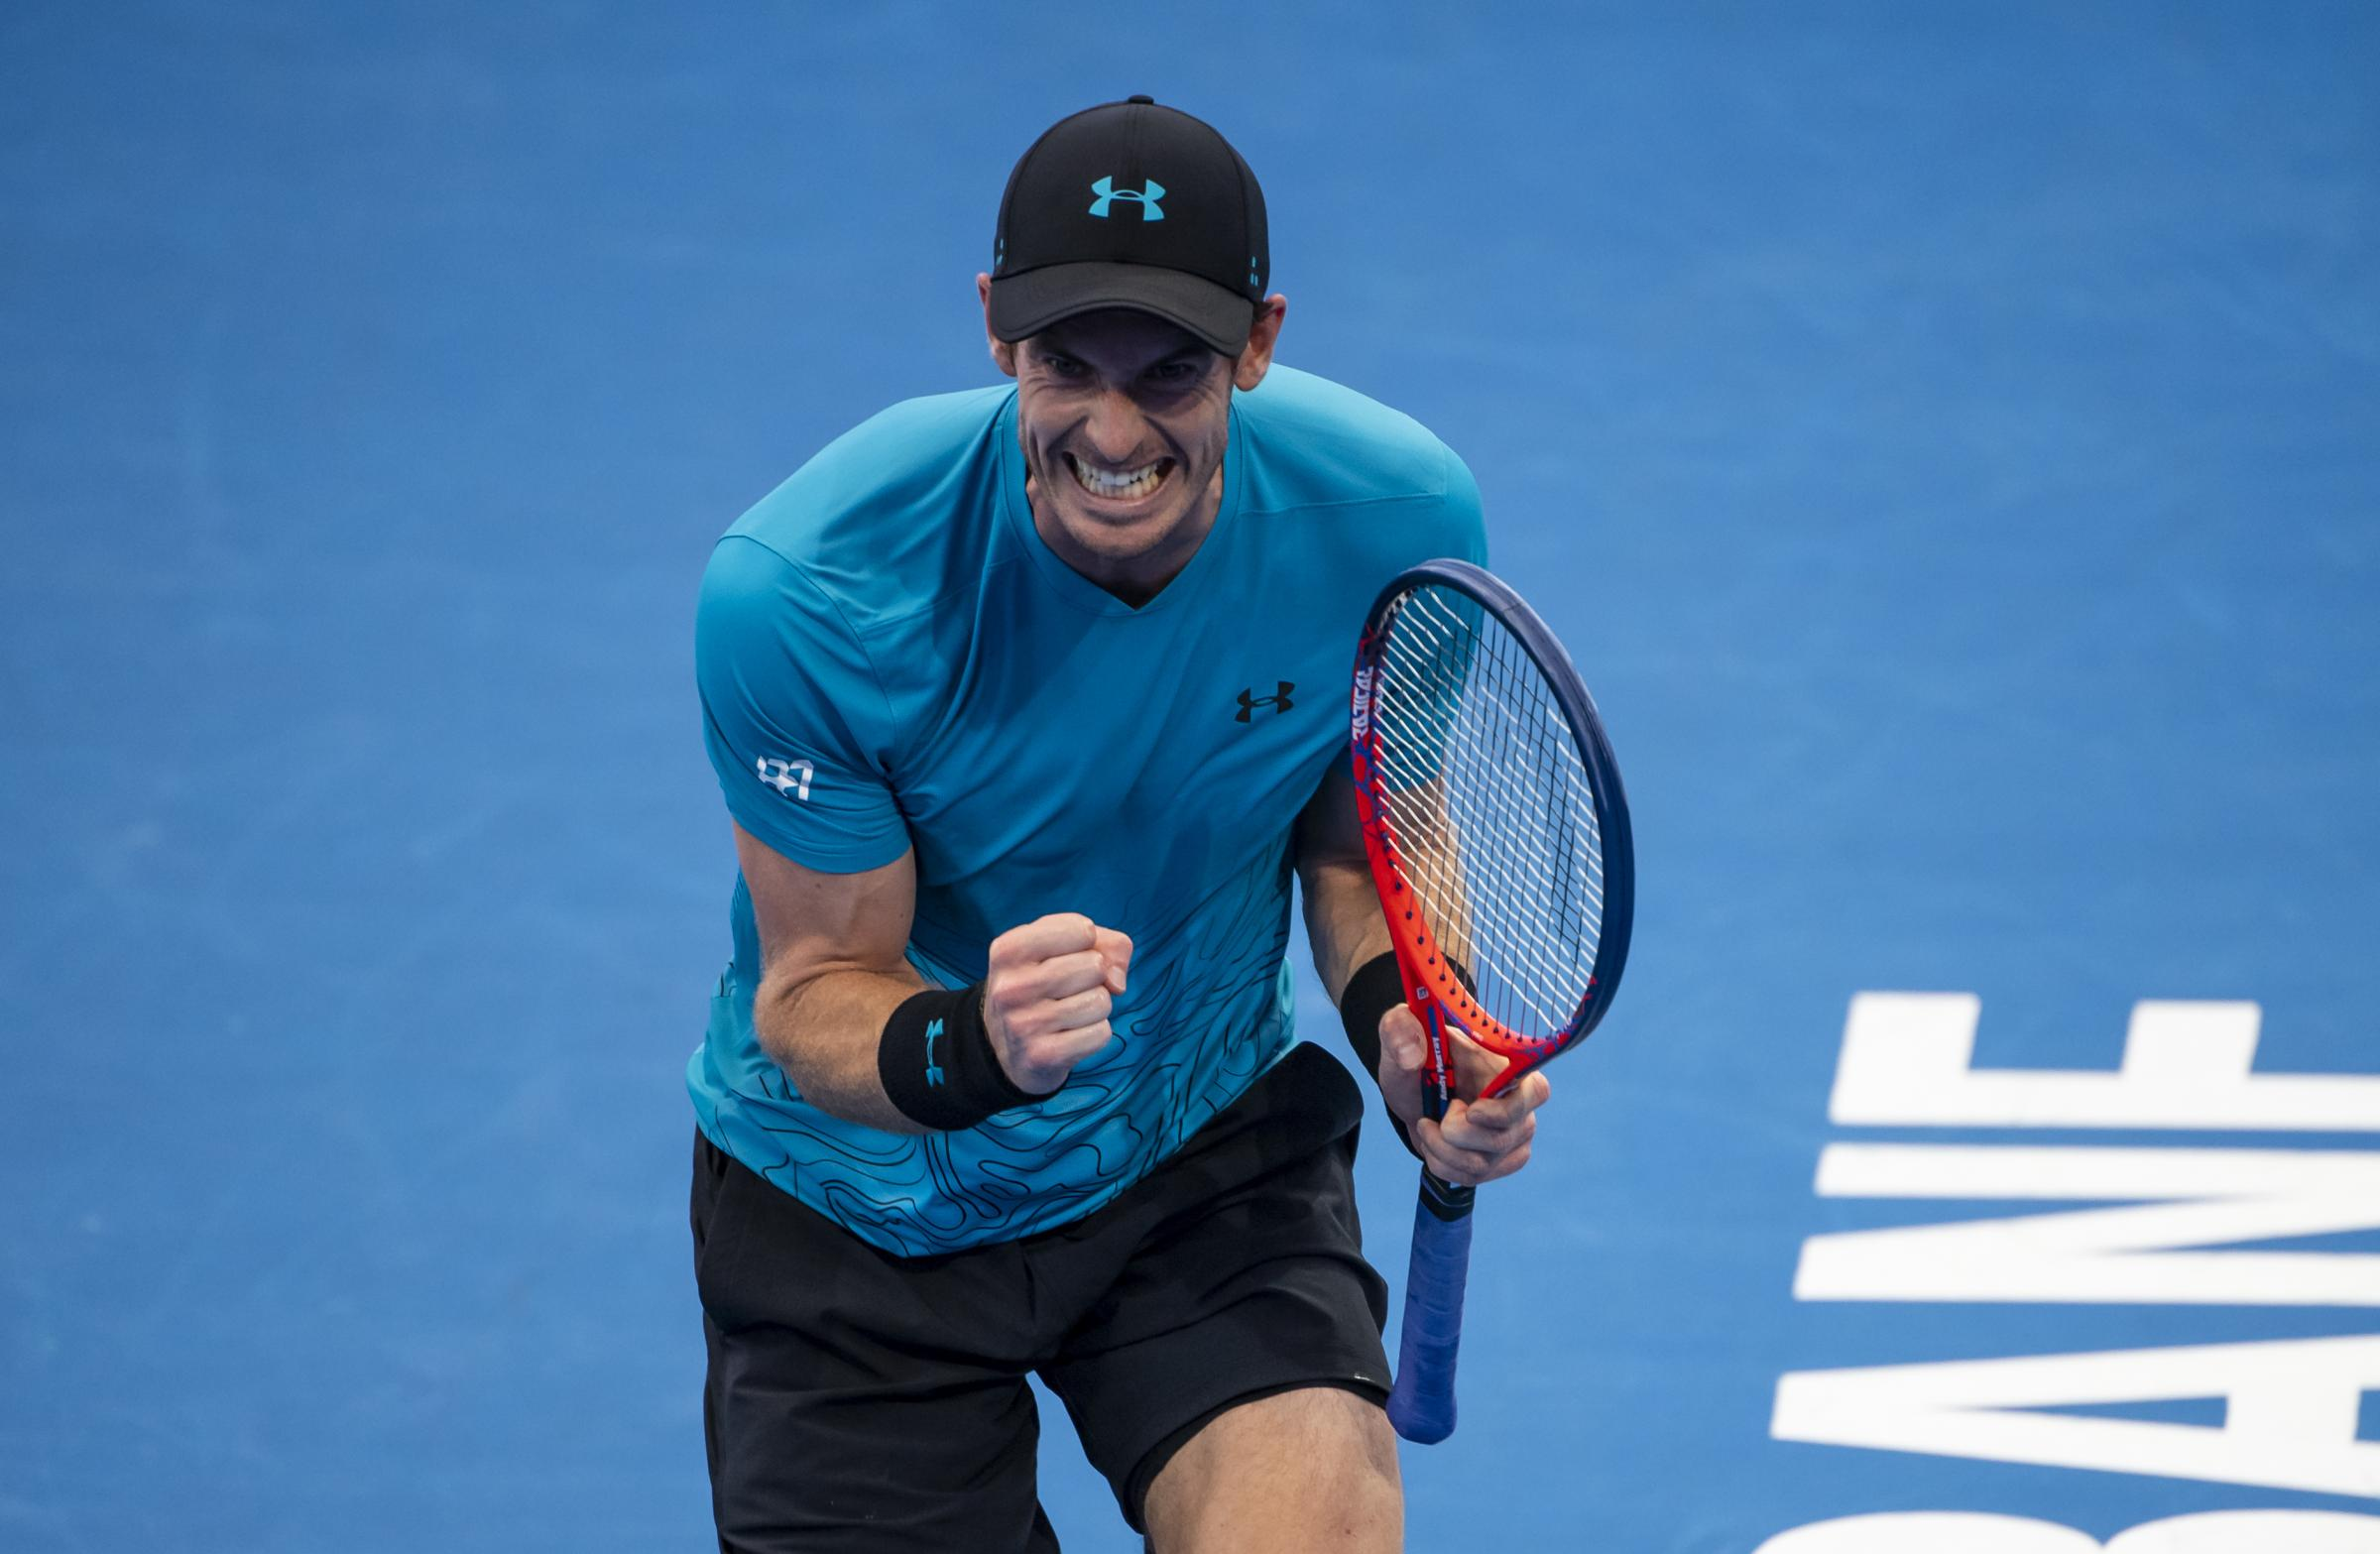 Andy Murray showed that fighting spirit in the first round in Brisbane, but he was to bow out after his next match